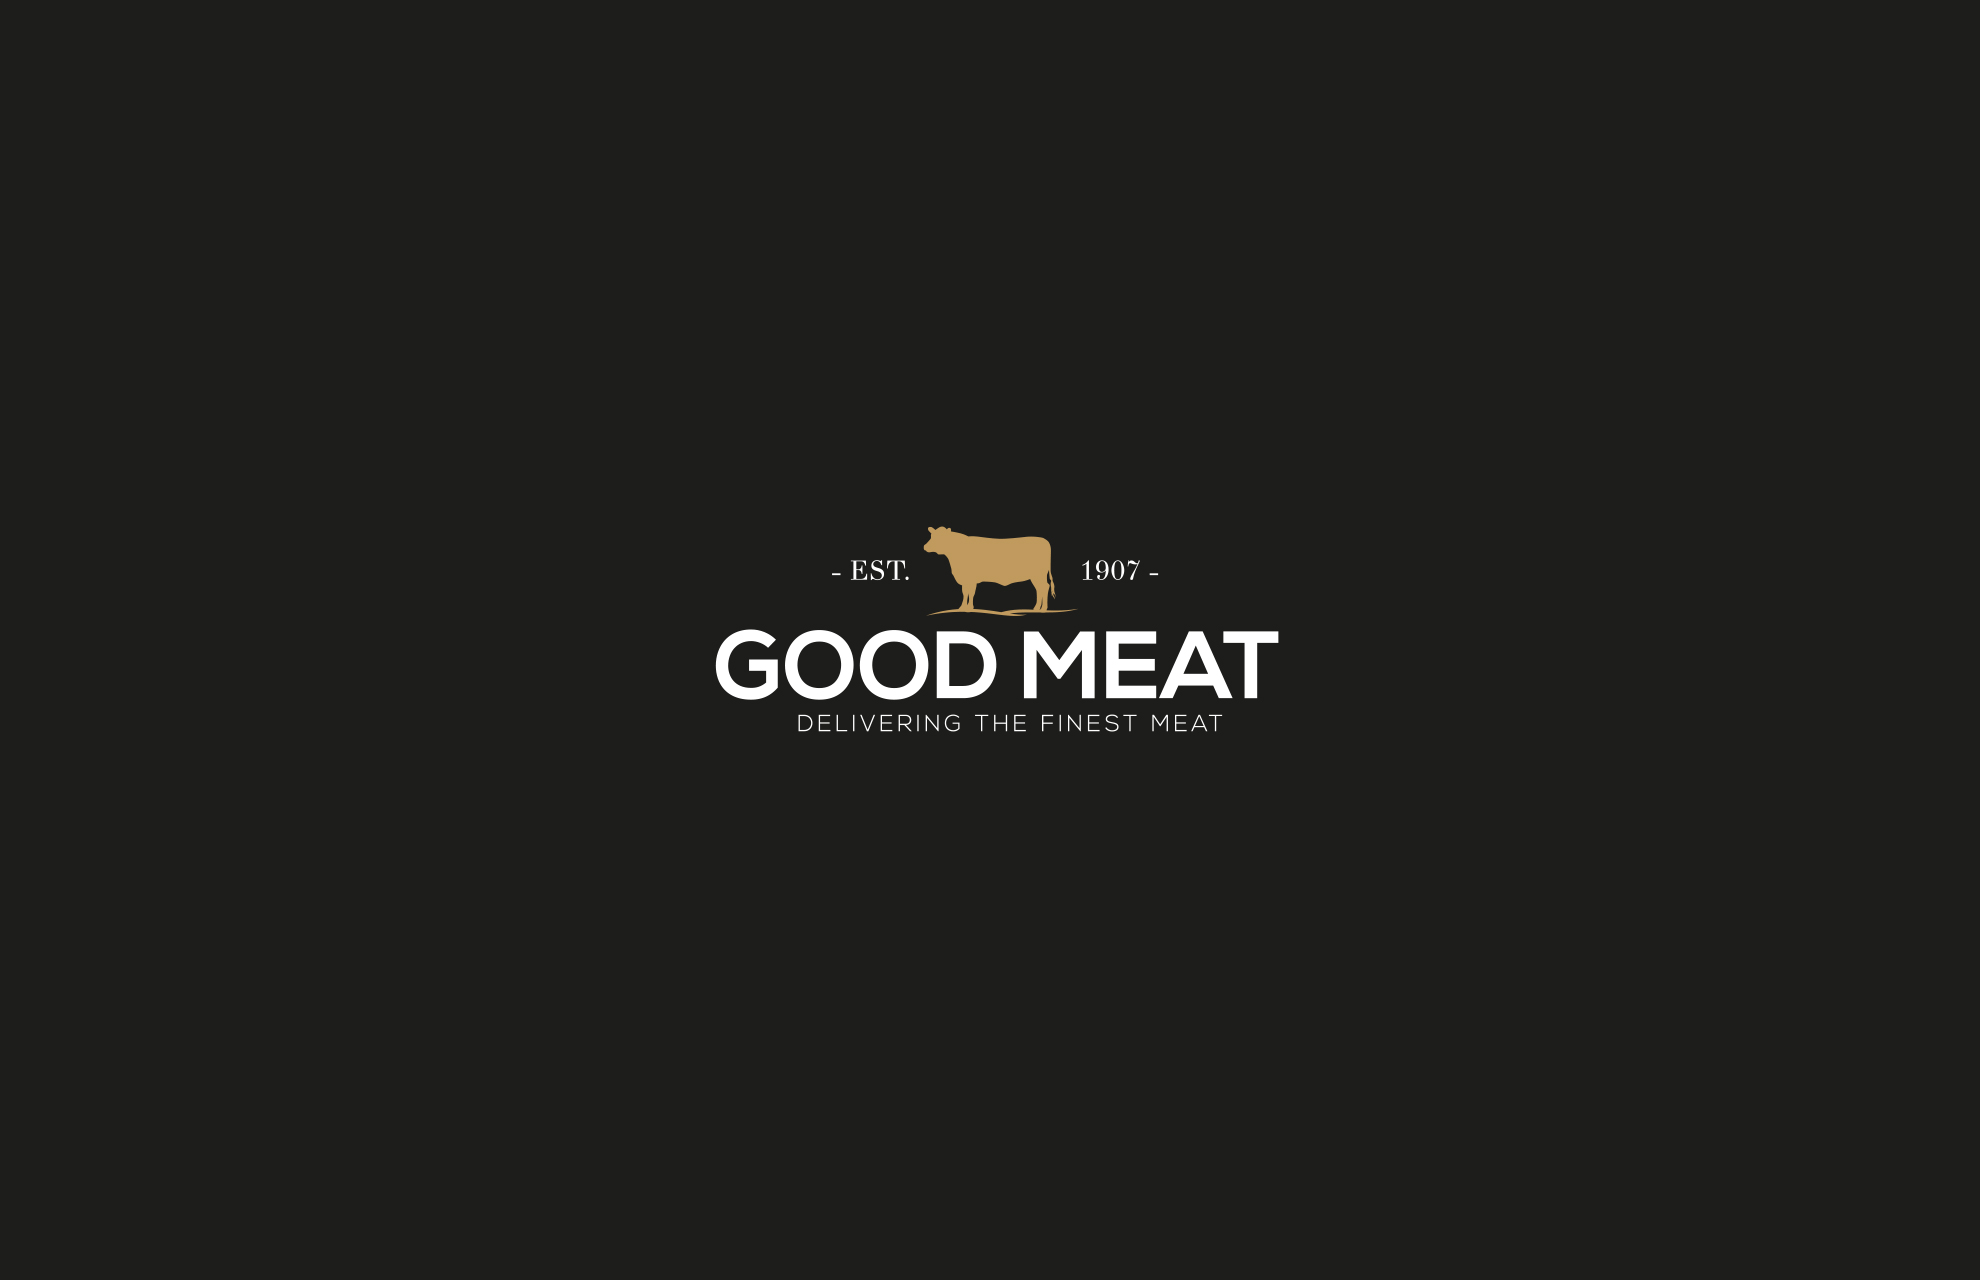 GoodMeat 1